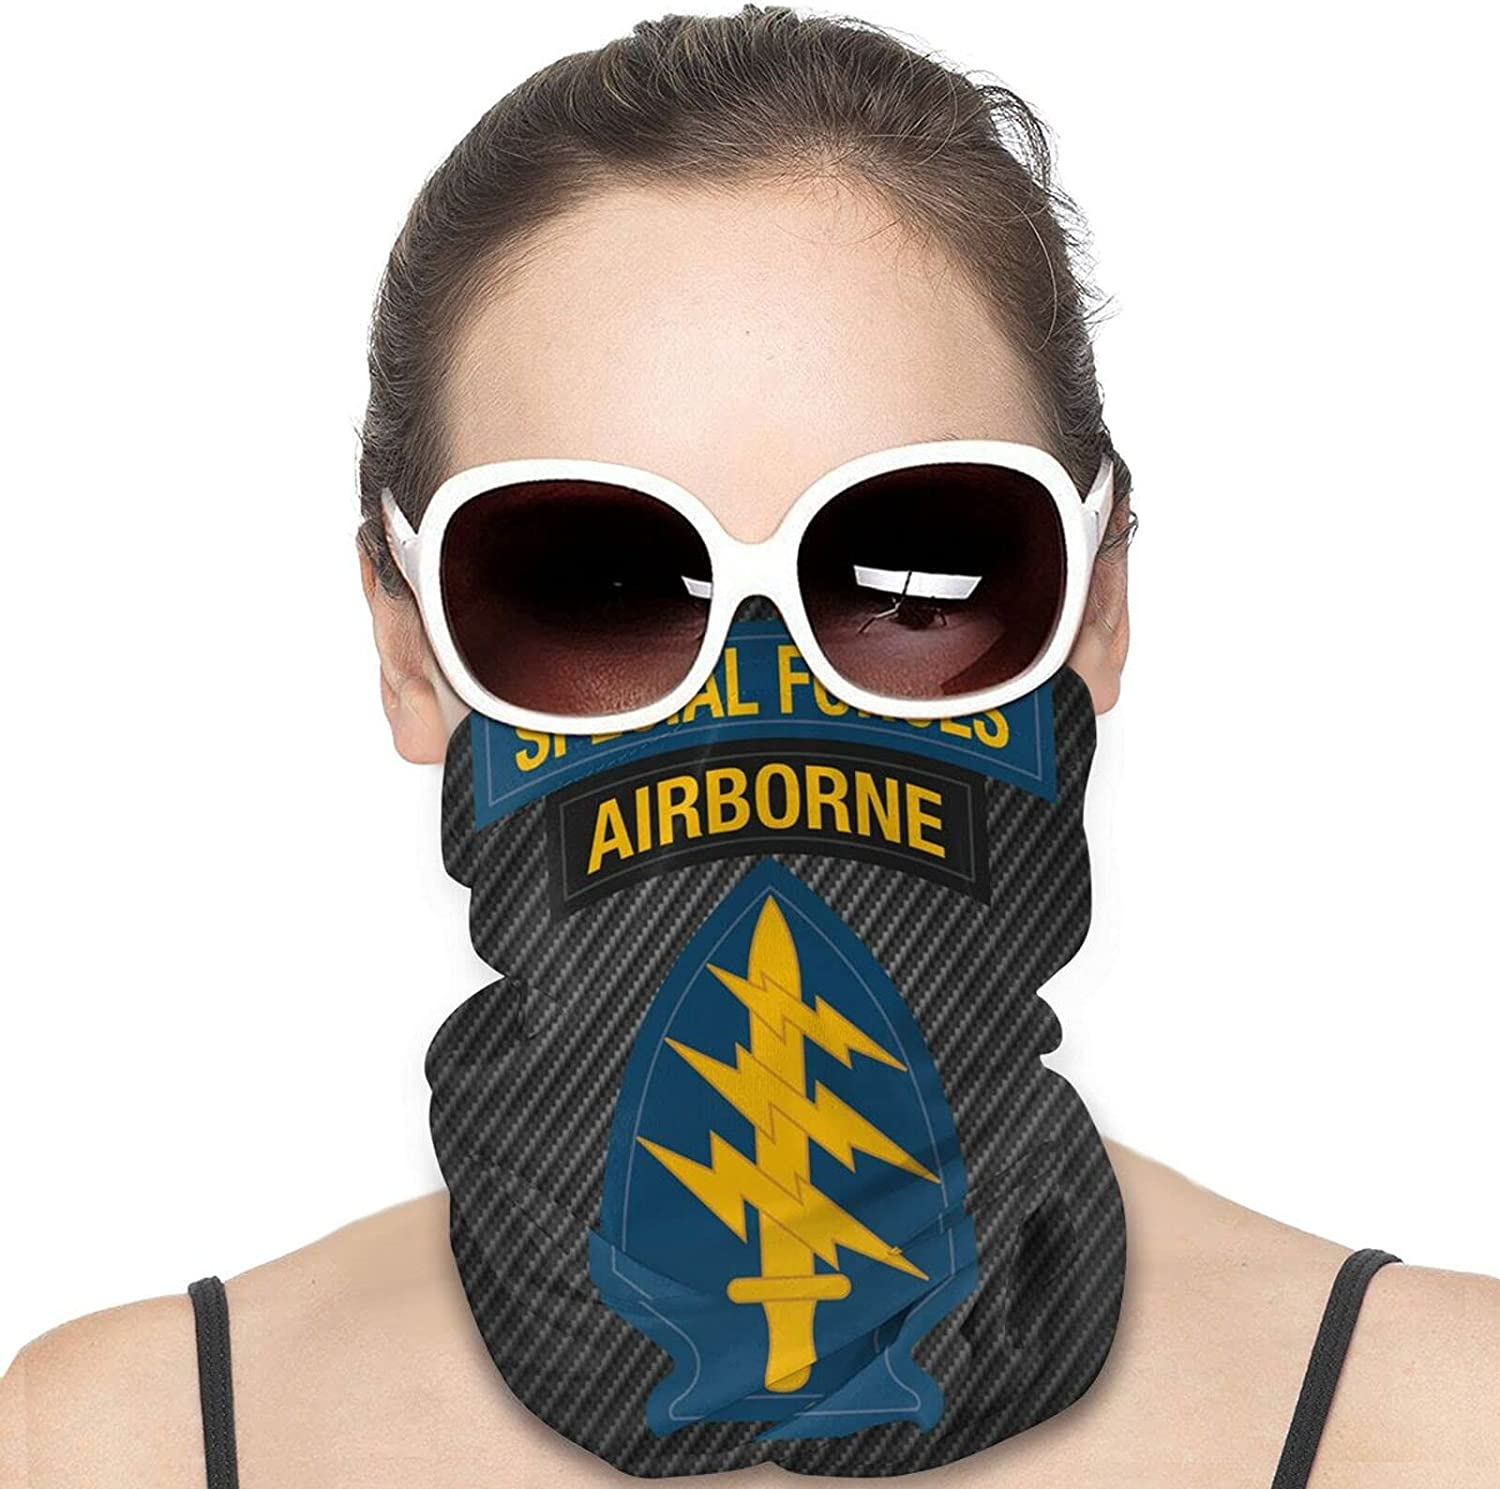 Forces Airborne Army Special Round Neck Gaiter Bandnas Face Cover Uv Protection Prevent bask in Ice Scarf Headbands Perfect for Motorcycle Cycling Running Festival Raves Outdoors